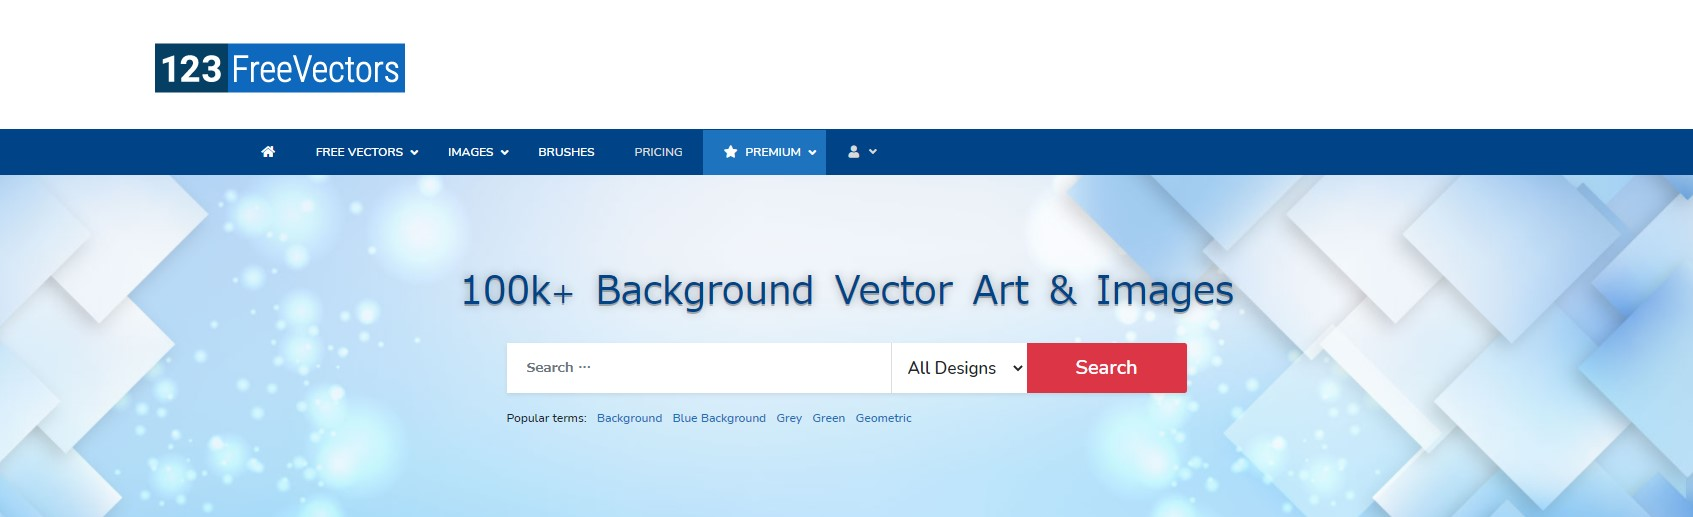 Download Free Vector Graphics, Background Vector Images | 123FreeVectors